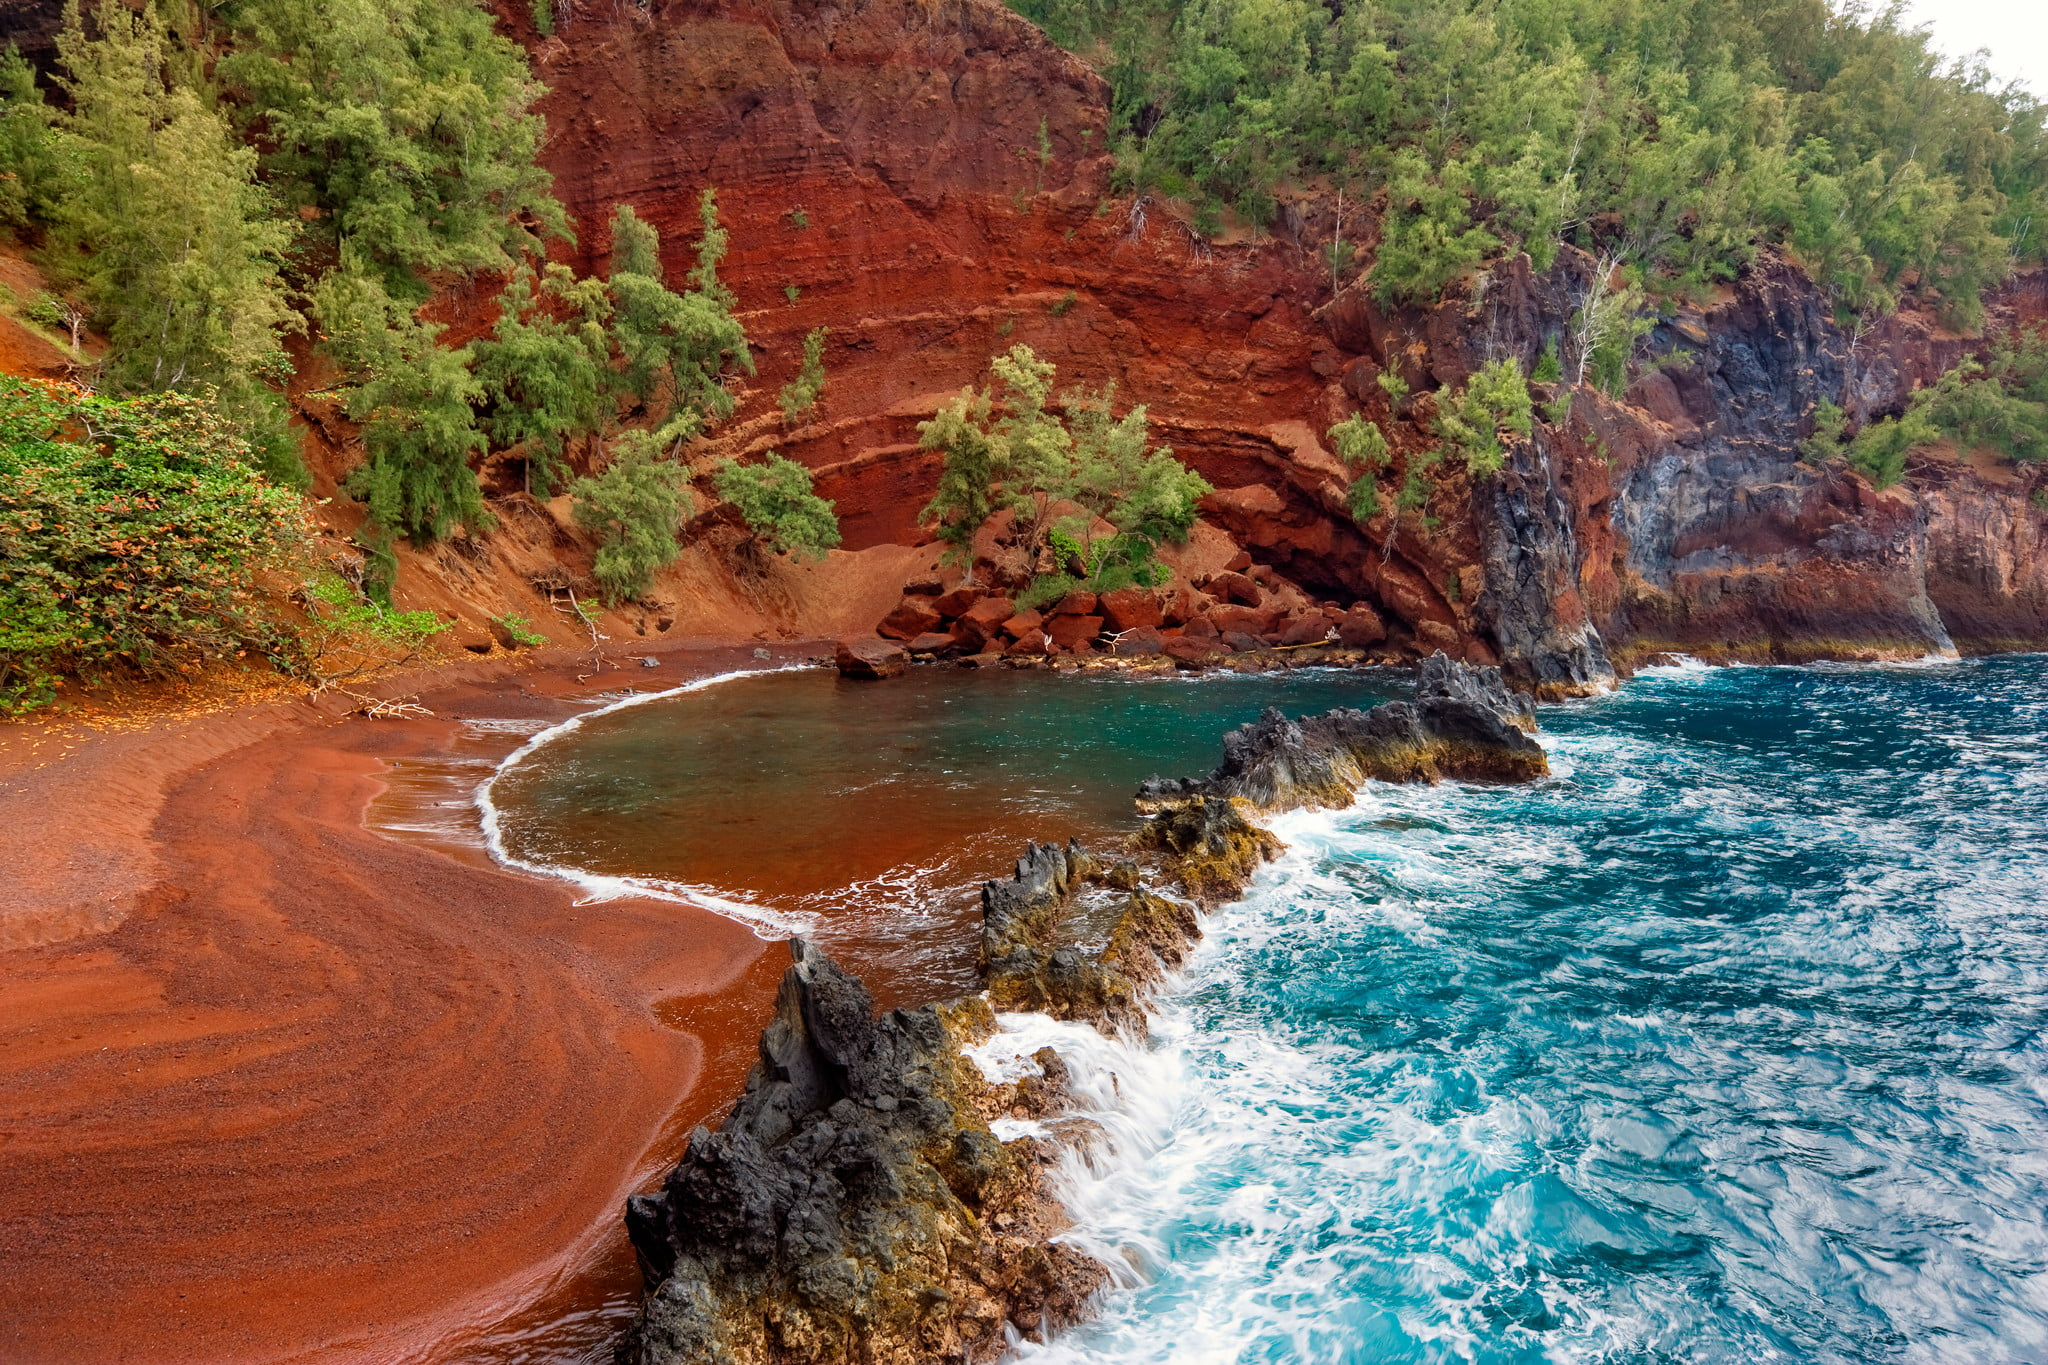 The Best Hiking Spots Across Hawaii, from the Big Island to Oahu